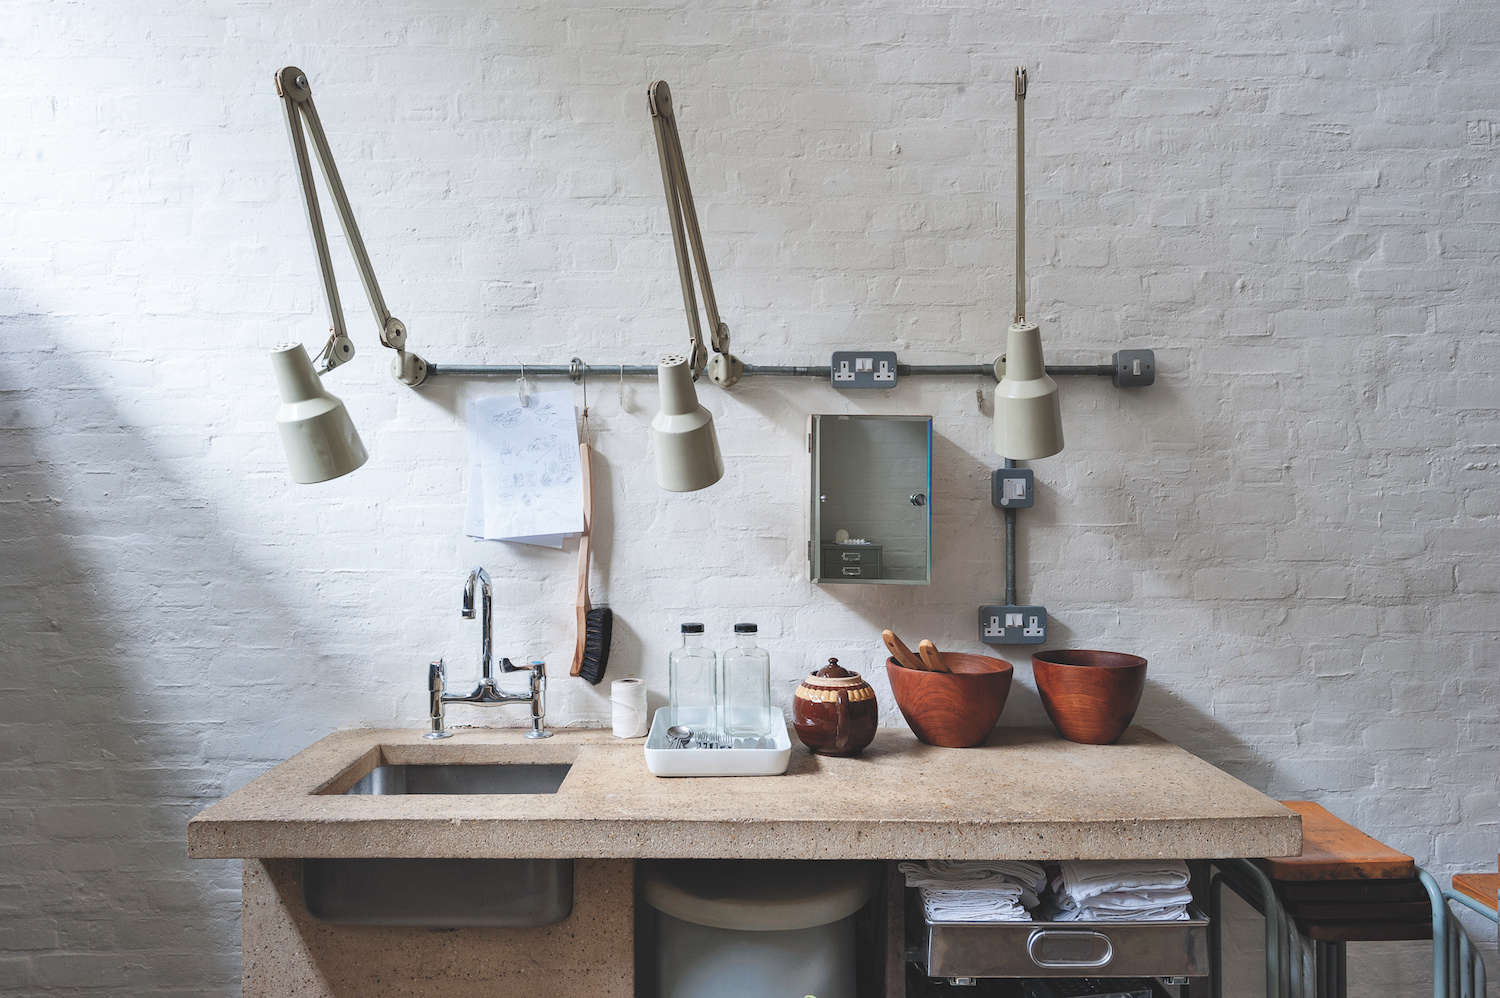 Alastair Hendy's London Kitchen with Clever Storage Solutions